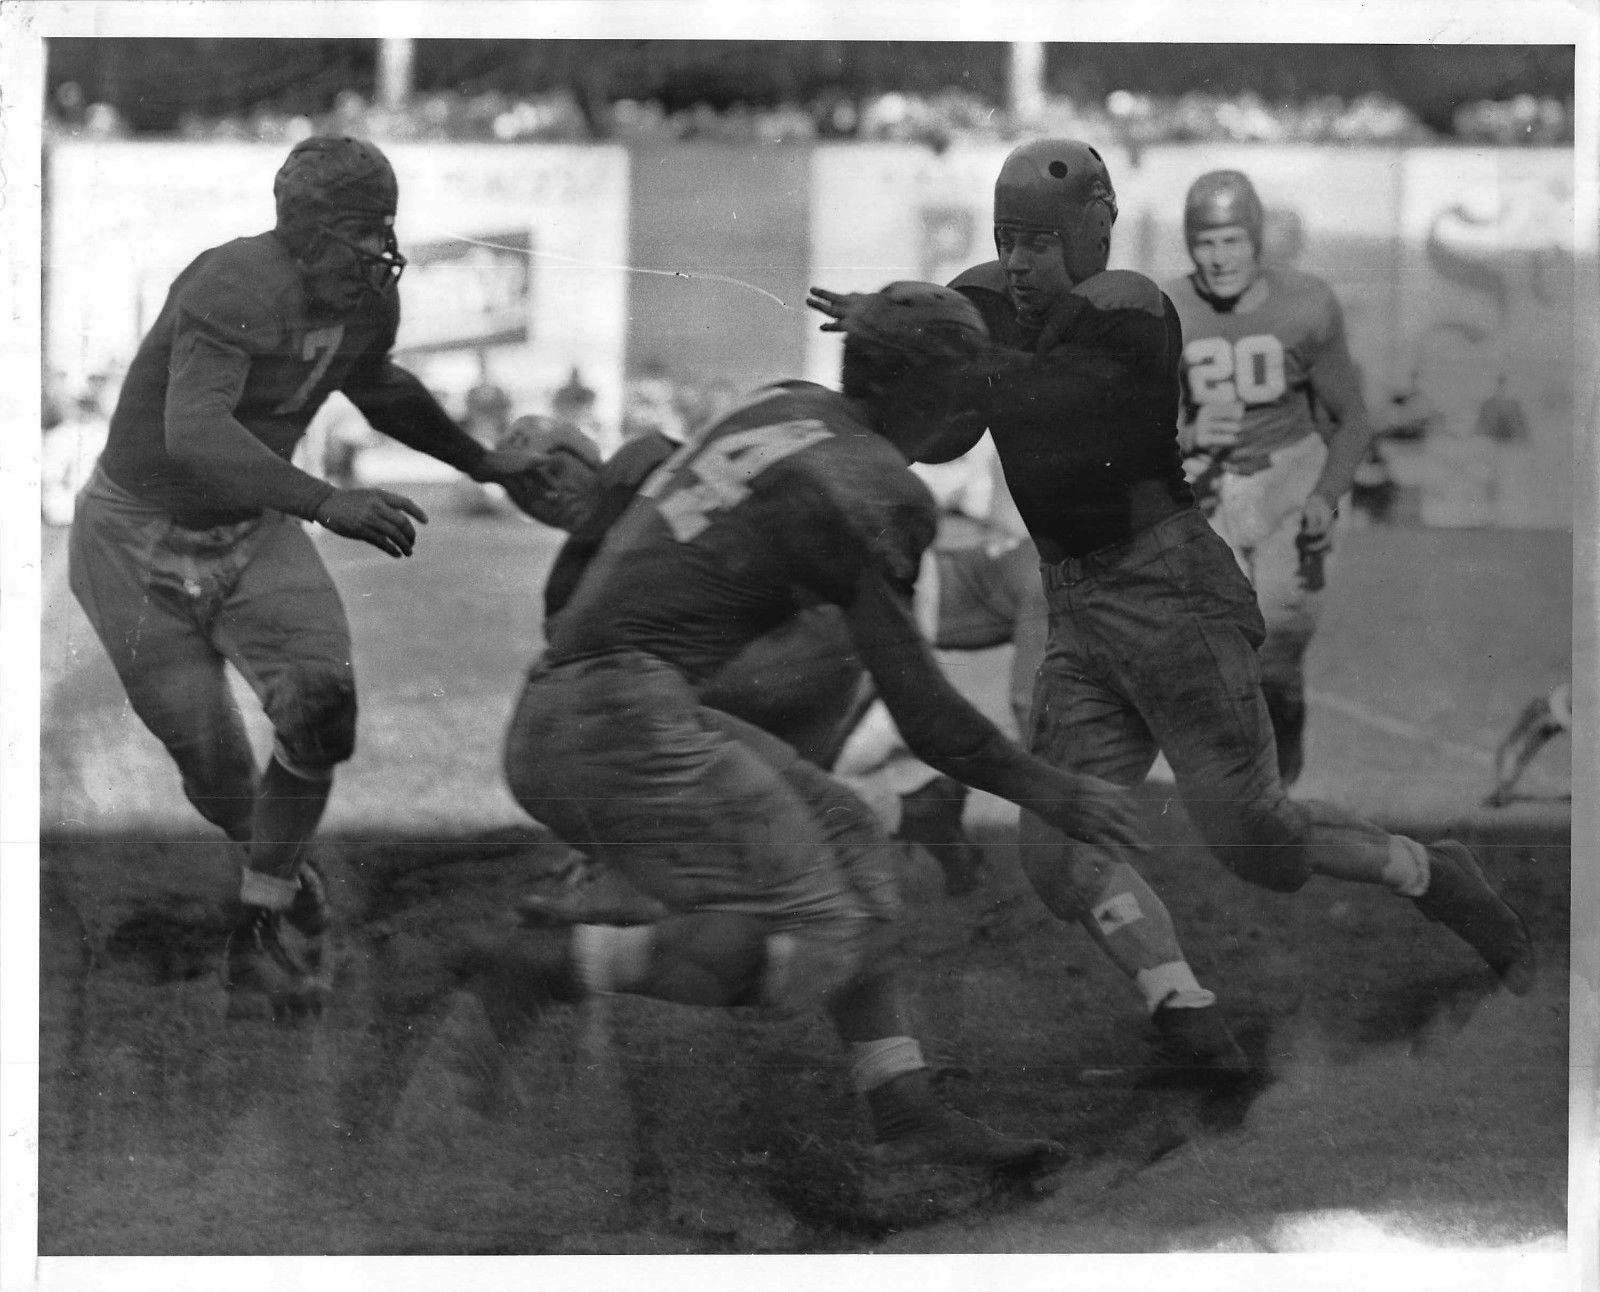 Mel Hein (7), Ward Cuff (14), and Leland Shaffer (20); New York Giants (October 31, 1943)